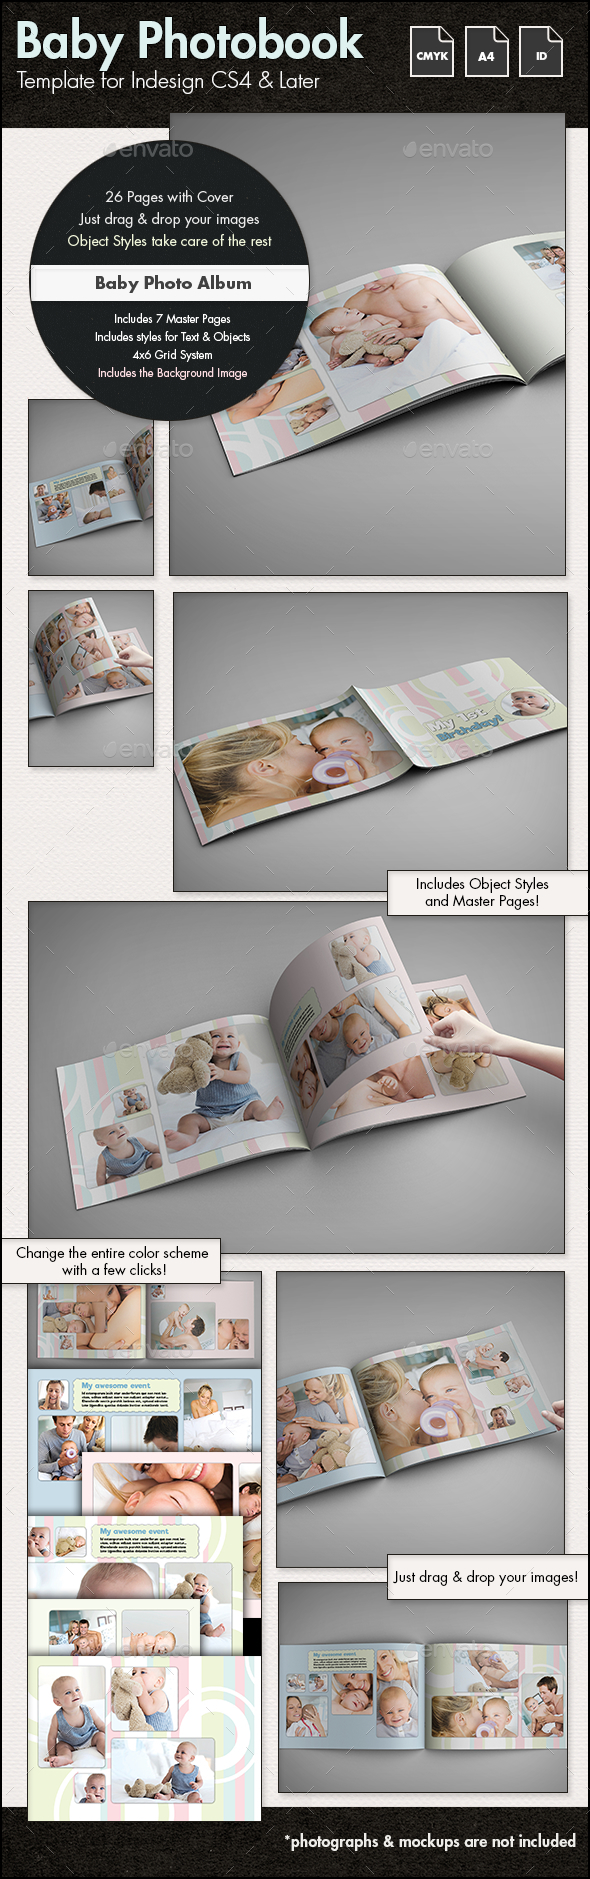 Baby Photobook Album Template g2 - A4 Landscape by sthalassinos ...